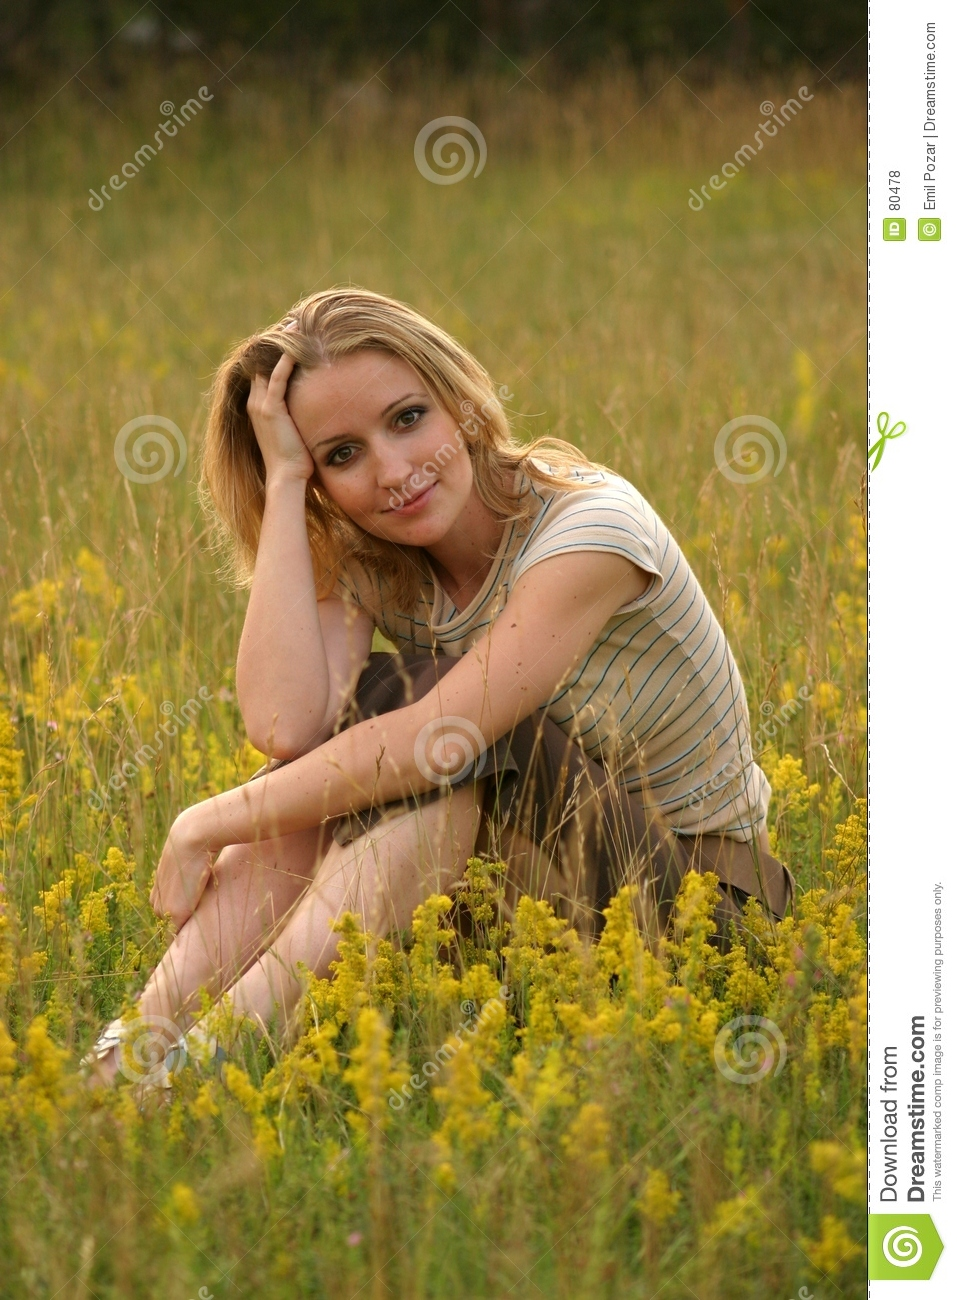 Little Cute Girl Wallpaper Country Girl Sitting In The Grass Royalty Free Stock